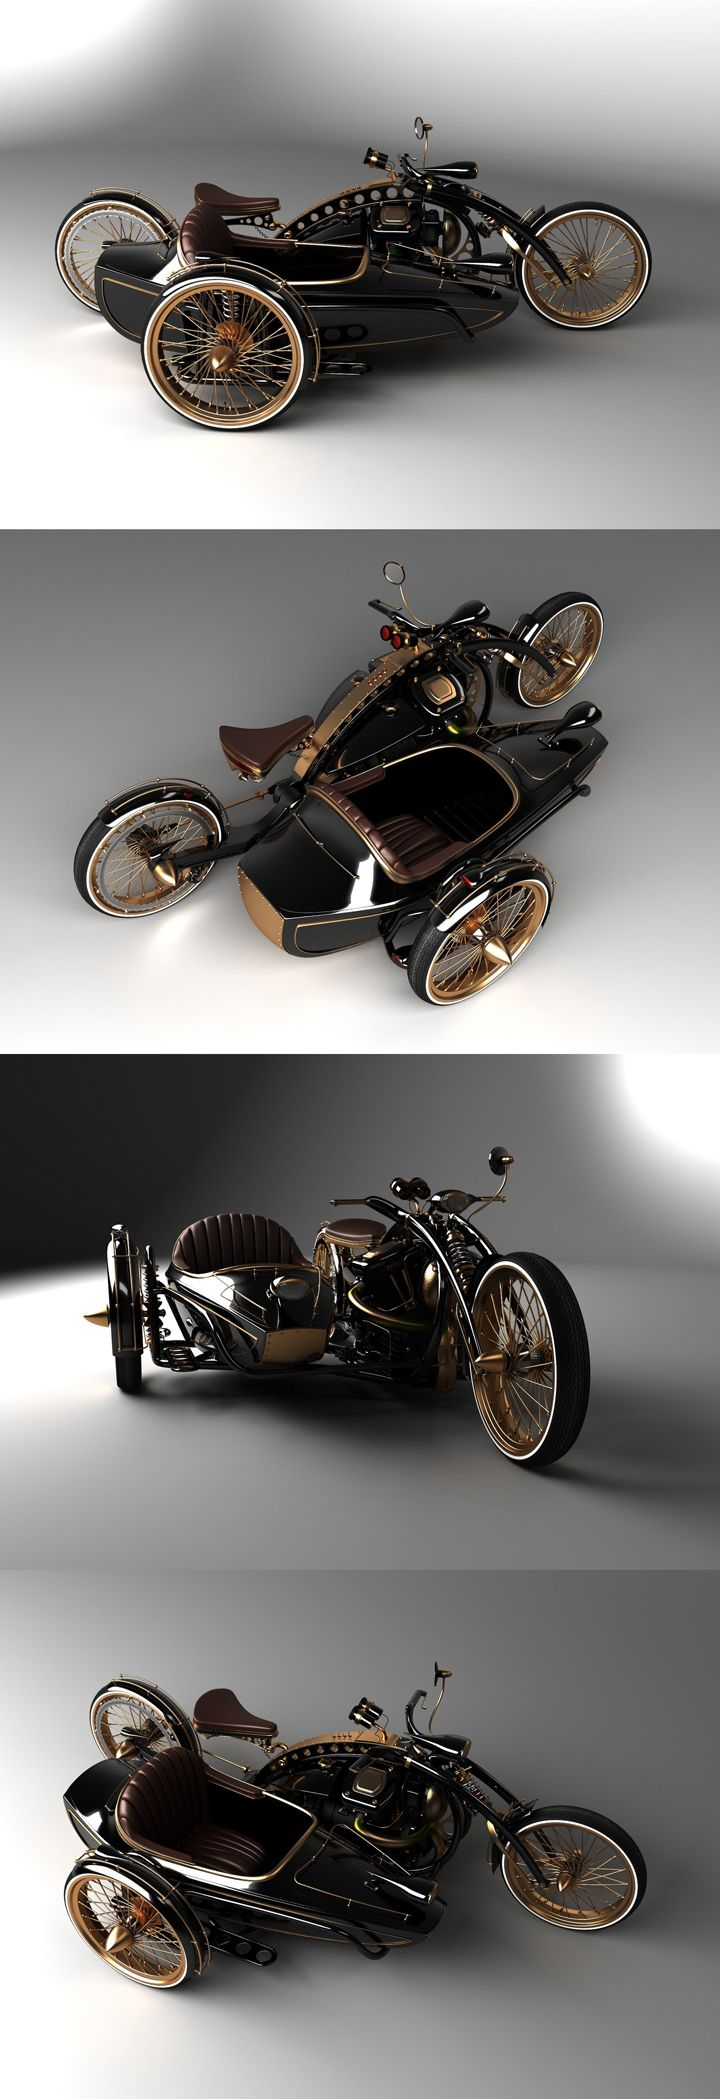 "♂ Steampunk Chopper ""Black Widow"" in production. from…                                                                                                                                                                                 More"